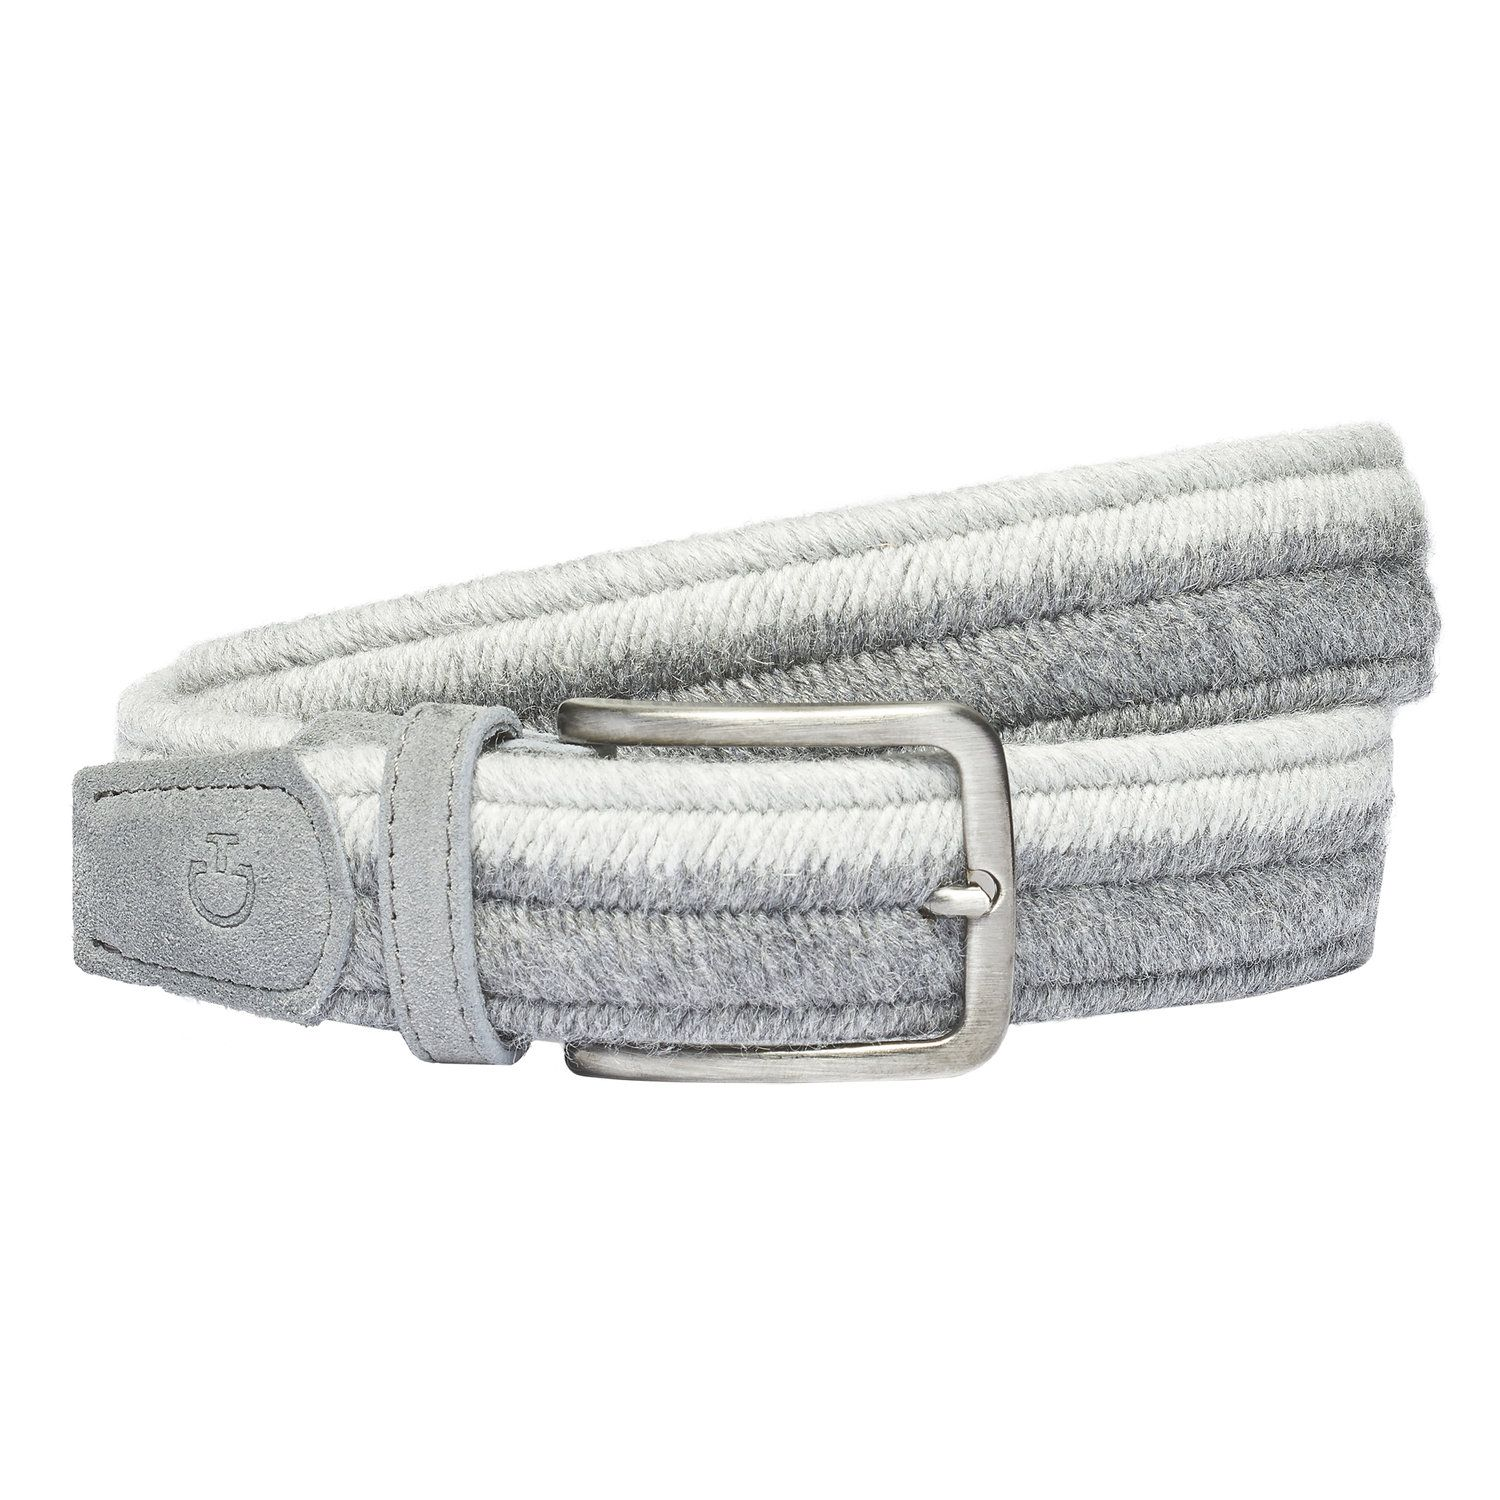 Bi-color wool belt